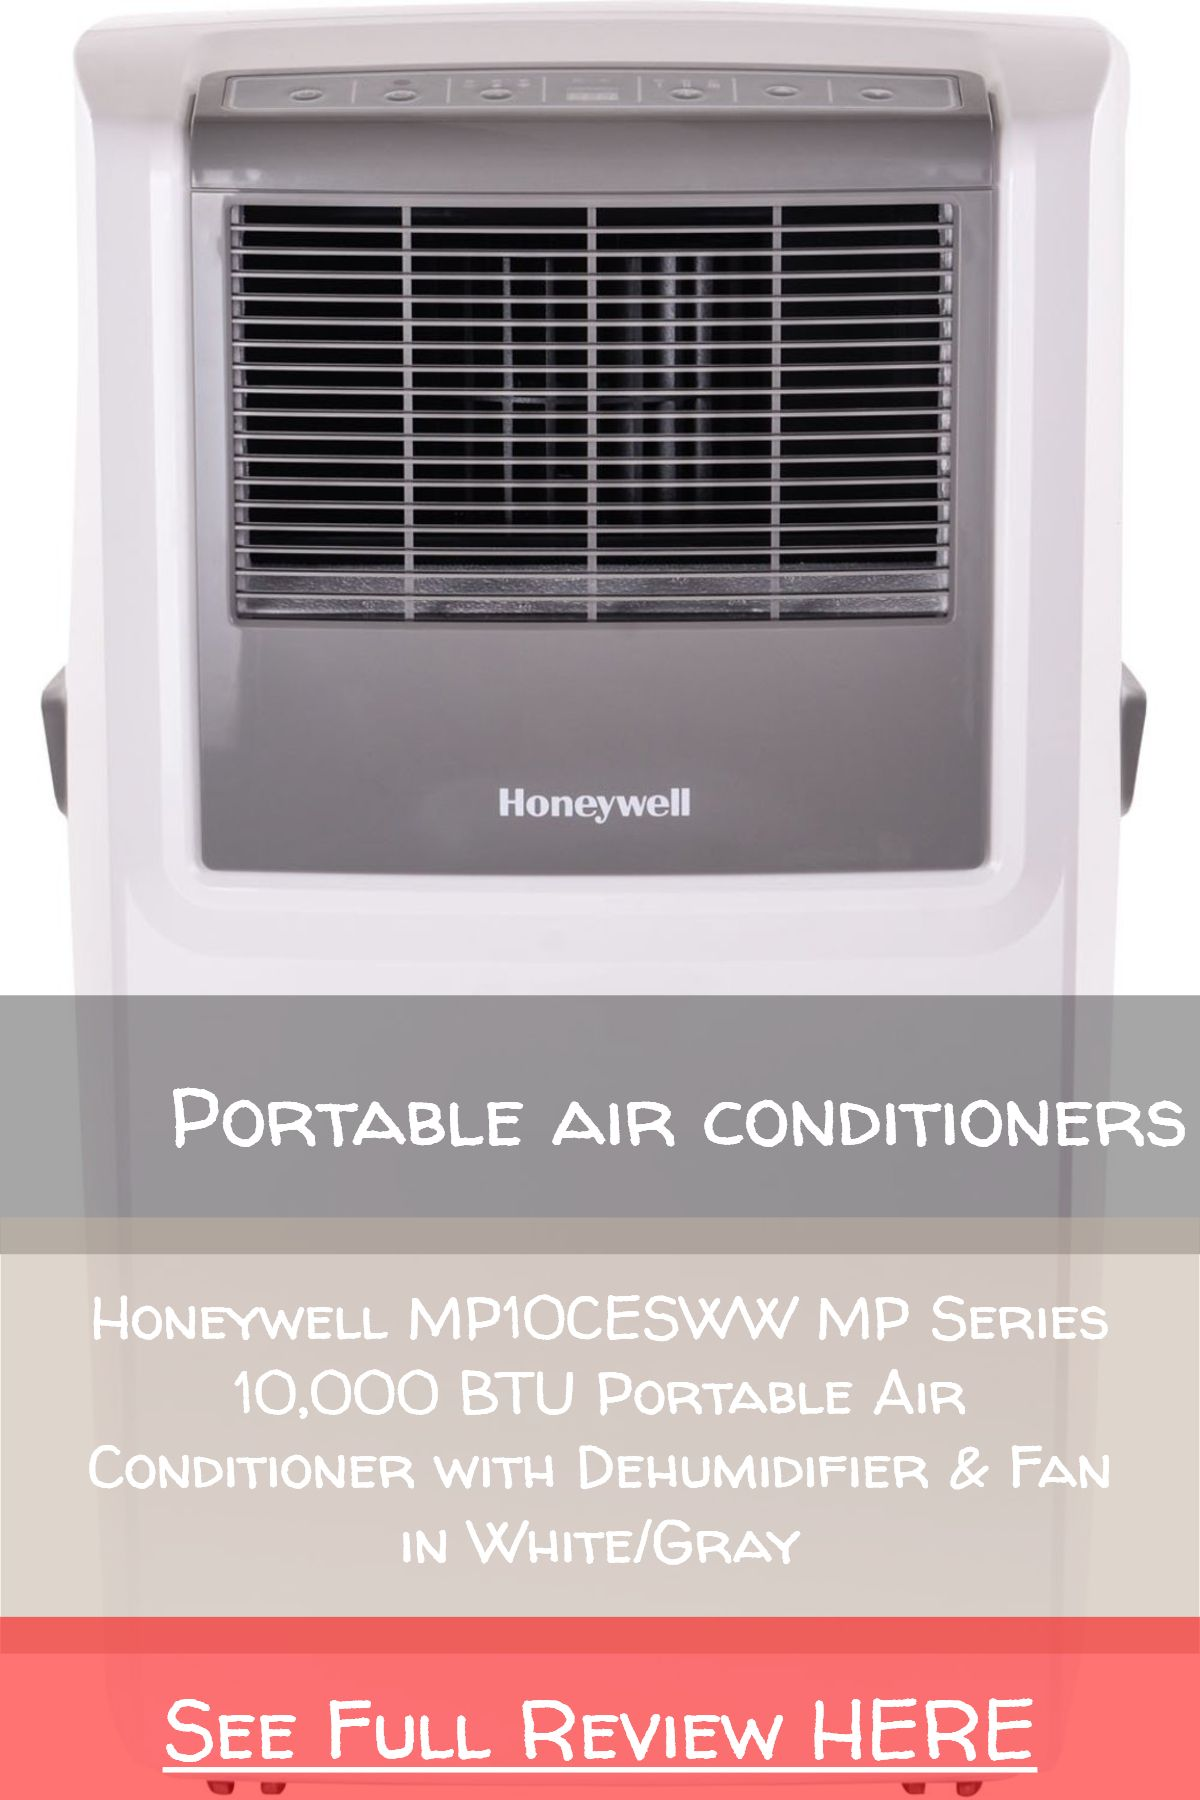 Portable air conditioners / Honeywell MP10CESWW MP Series